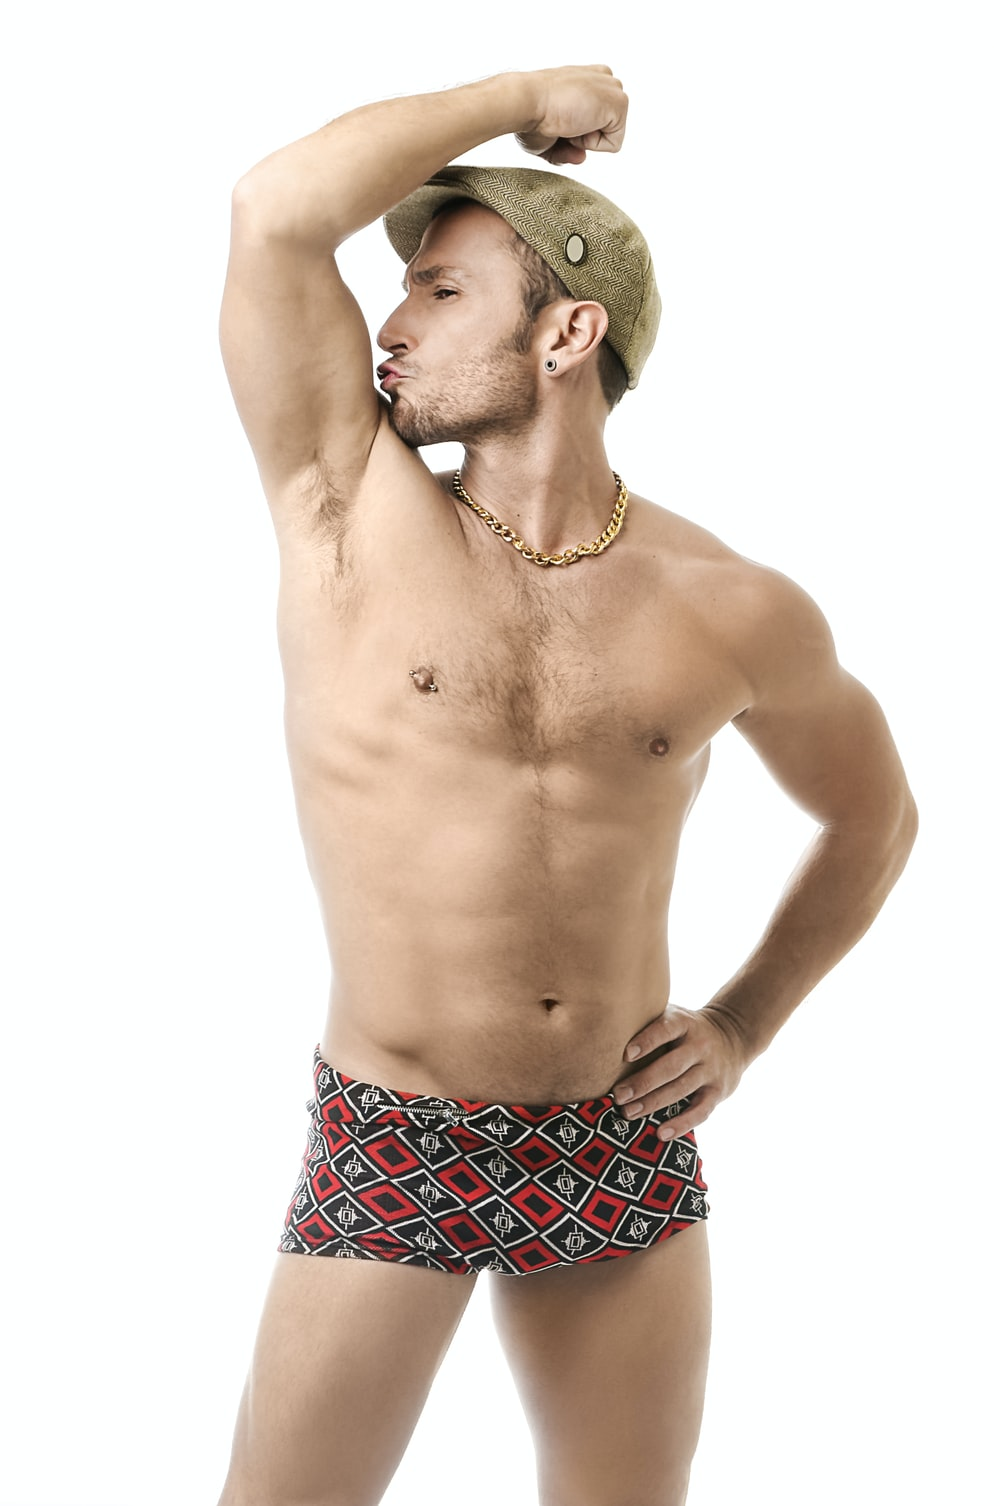 man wearing flat cap and boxer briefs